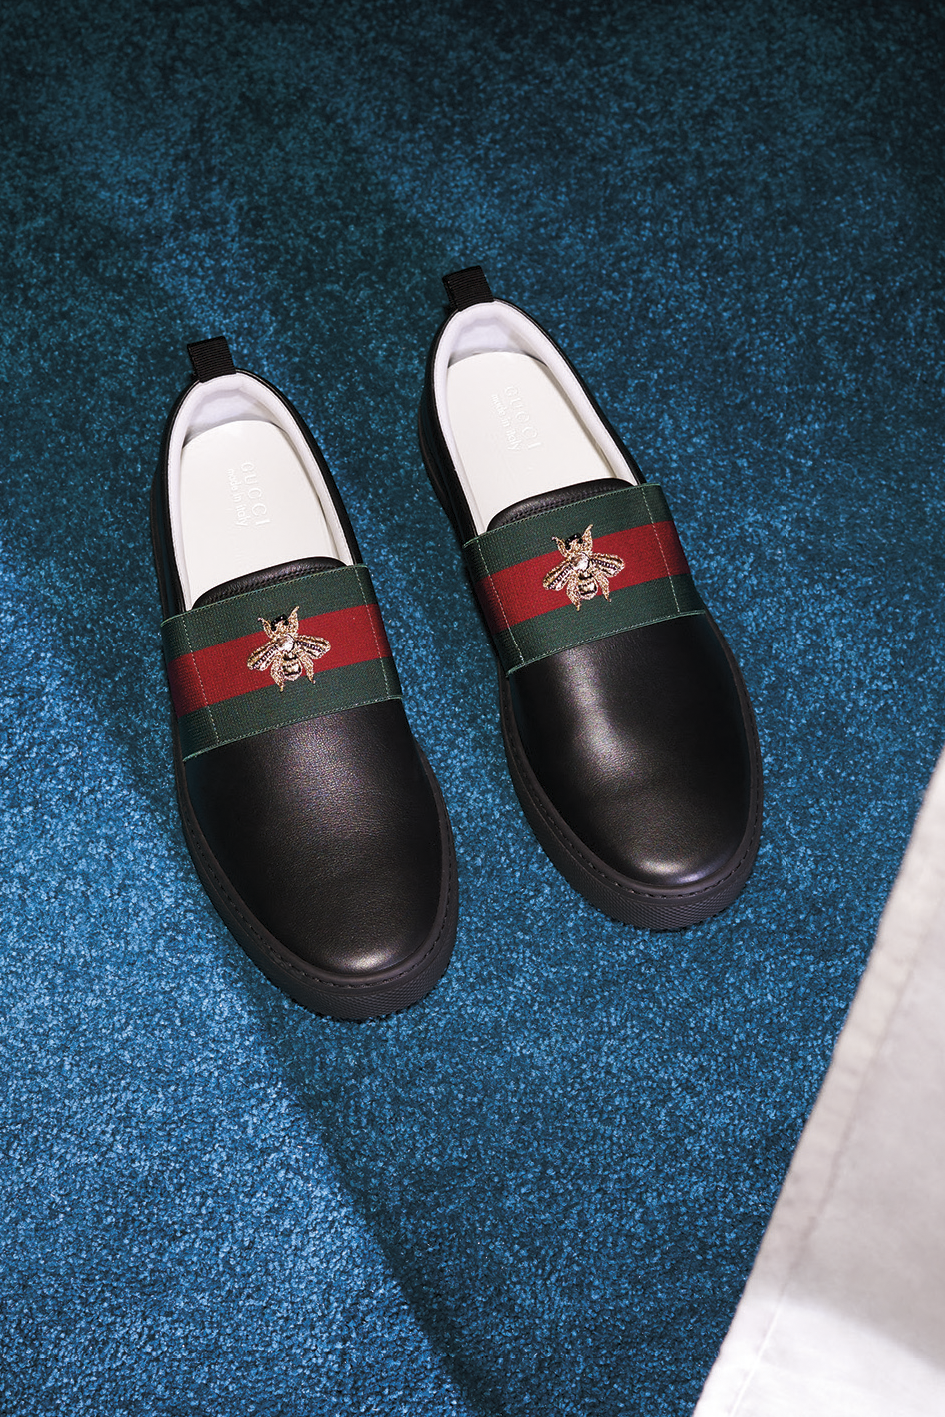 b2fdc737c422 Sneakers from the Gucci Gift selection  slip-ons in black leather detailed  with a signature green-red-green Web stripe and embroidered gold bee from  the ...